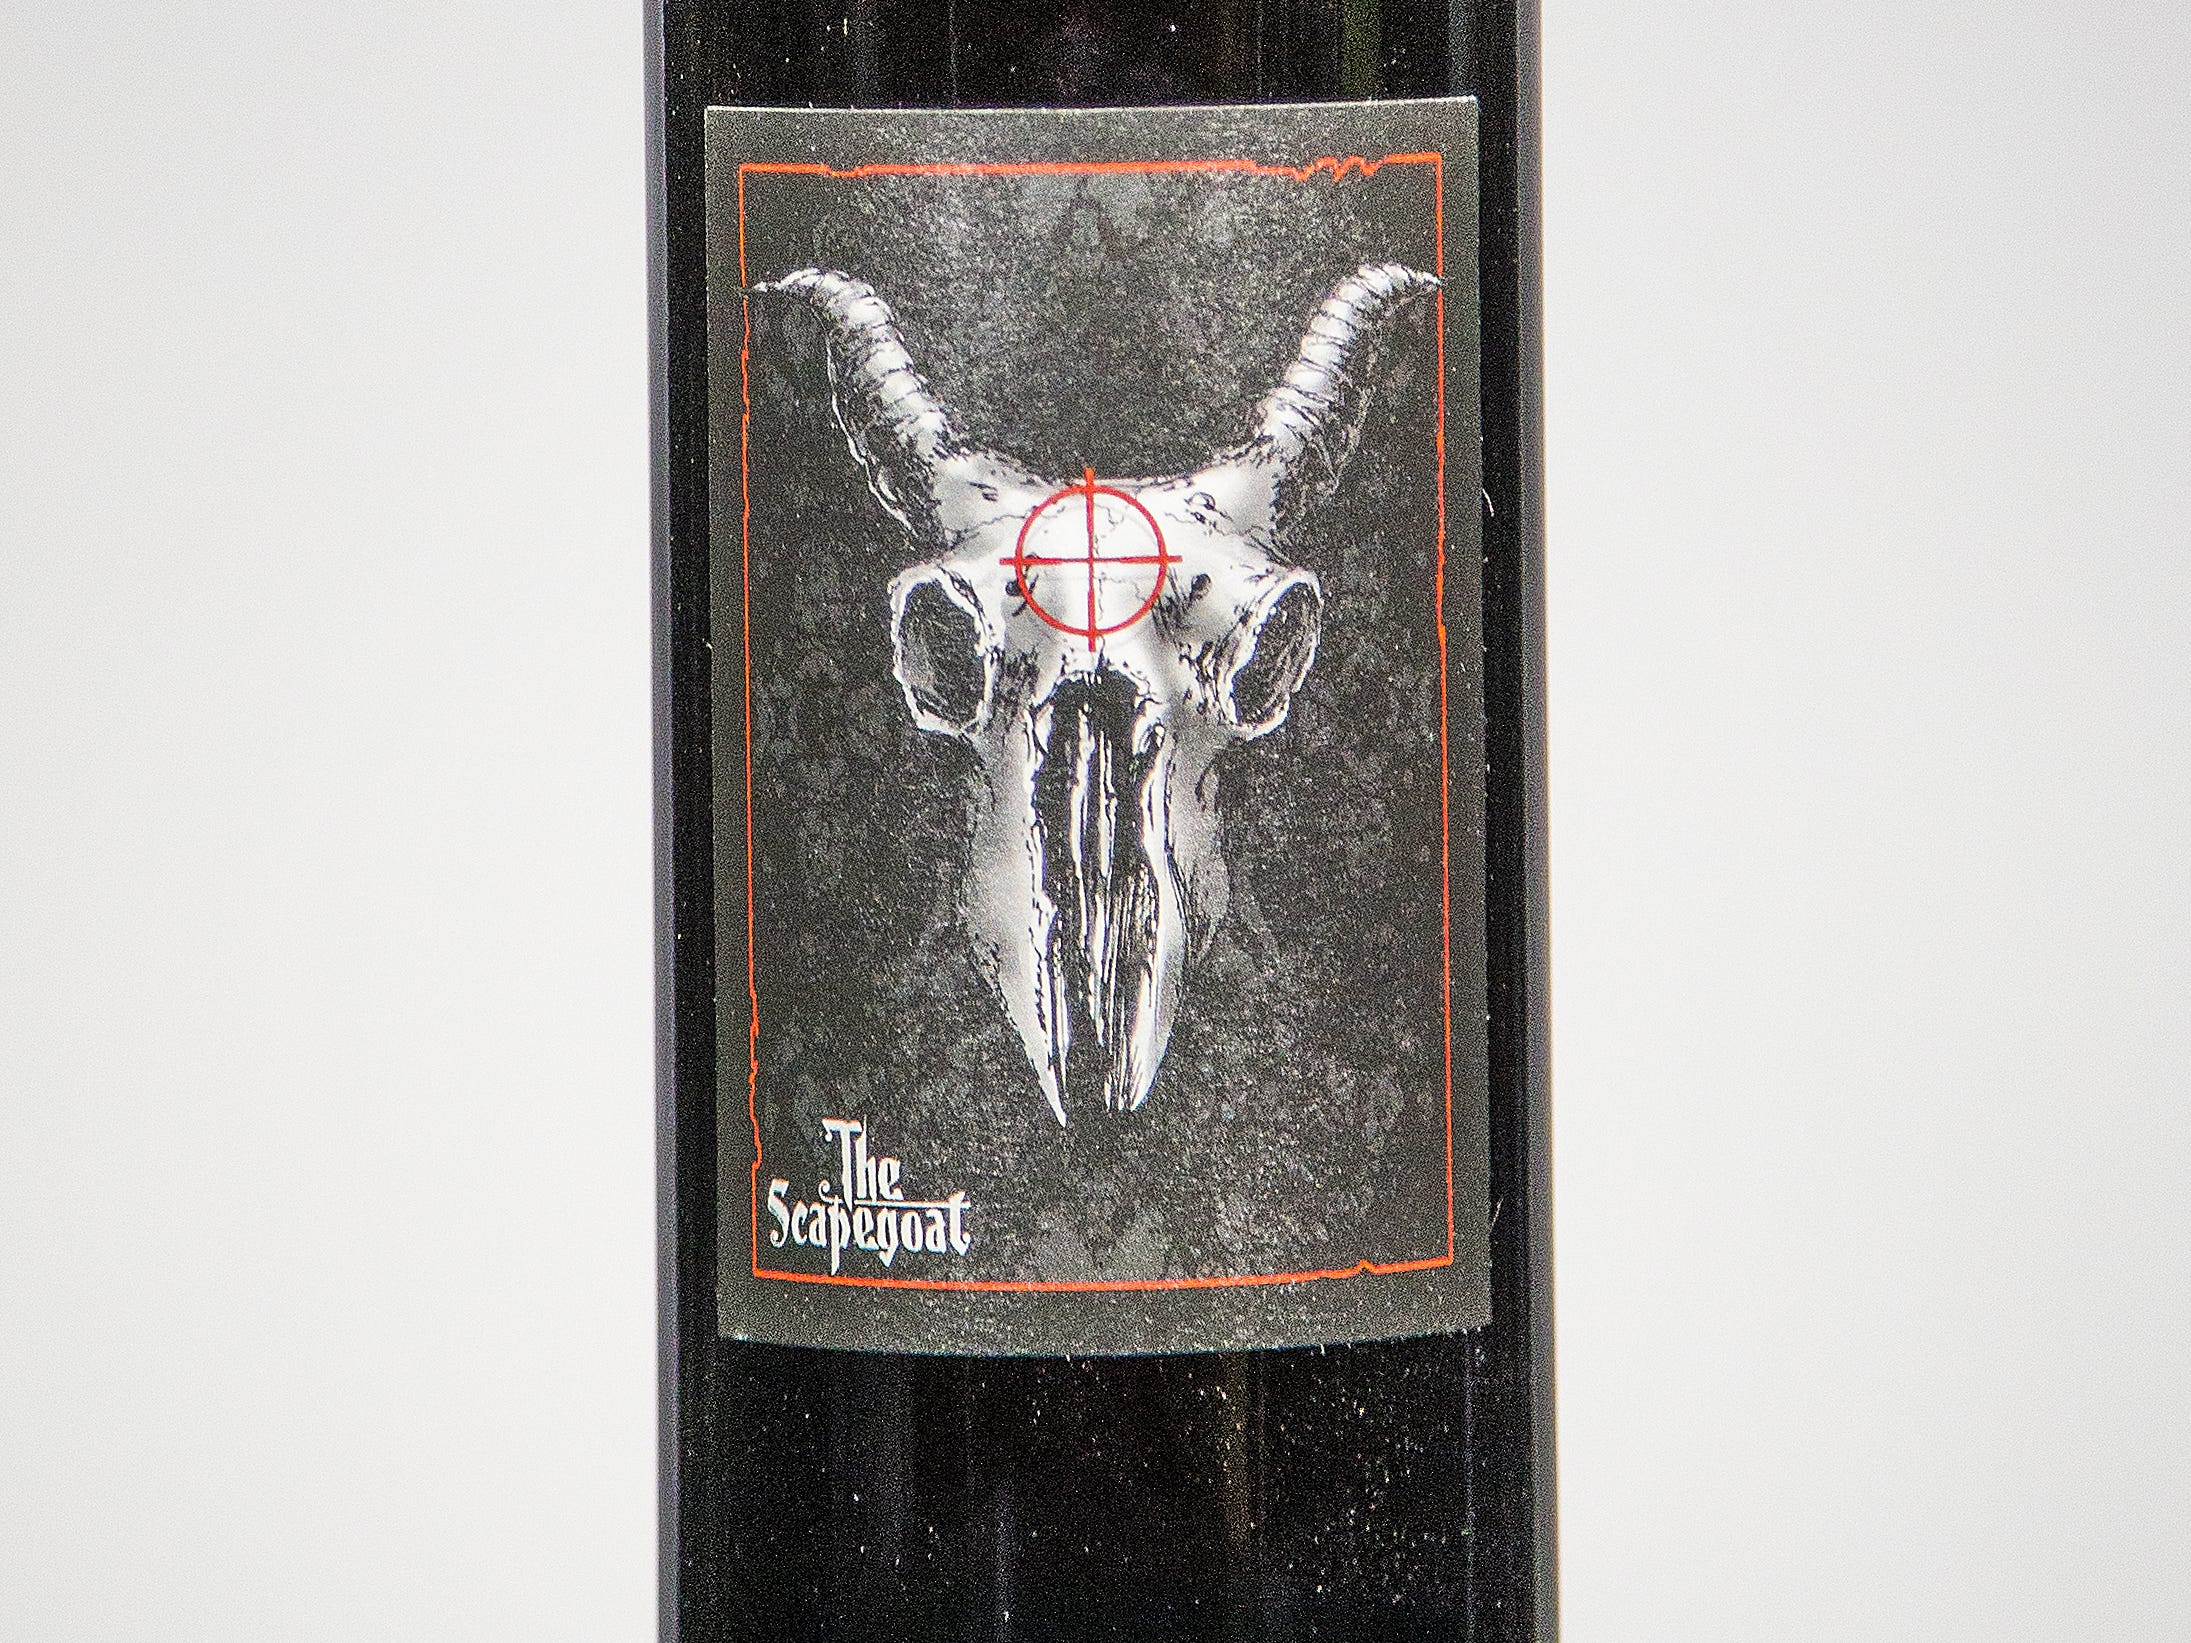 Best Bordeaux Blend: Burning Tree Cellars The Scapegoat 2016.